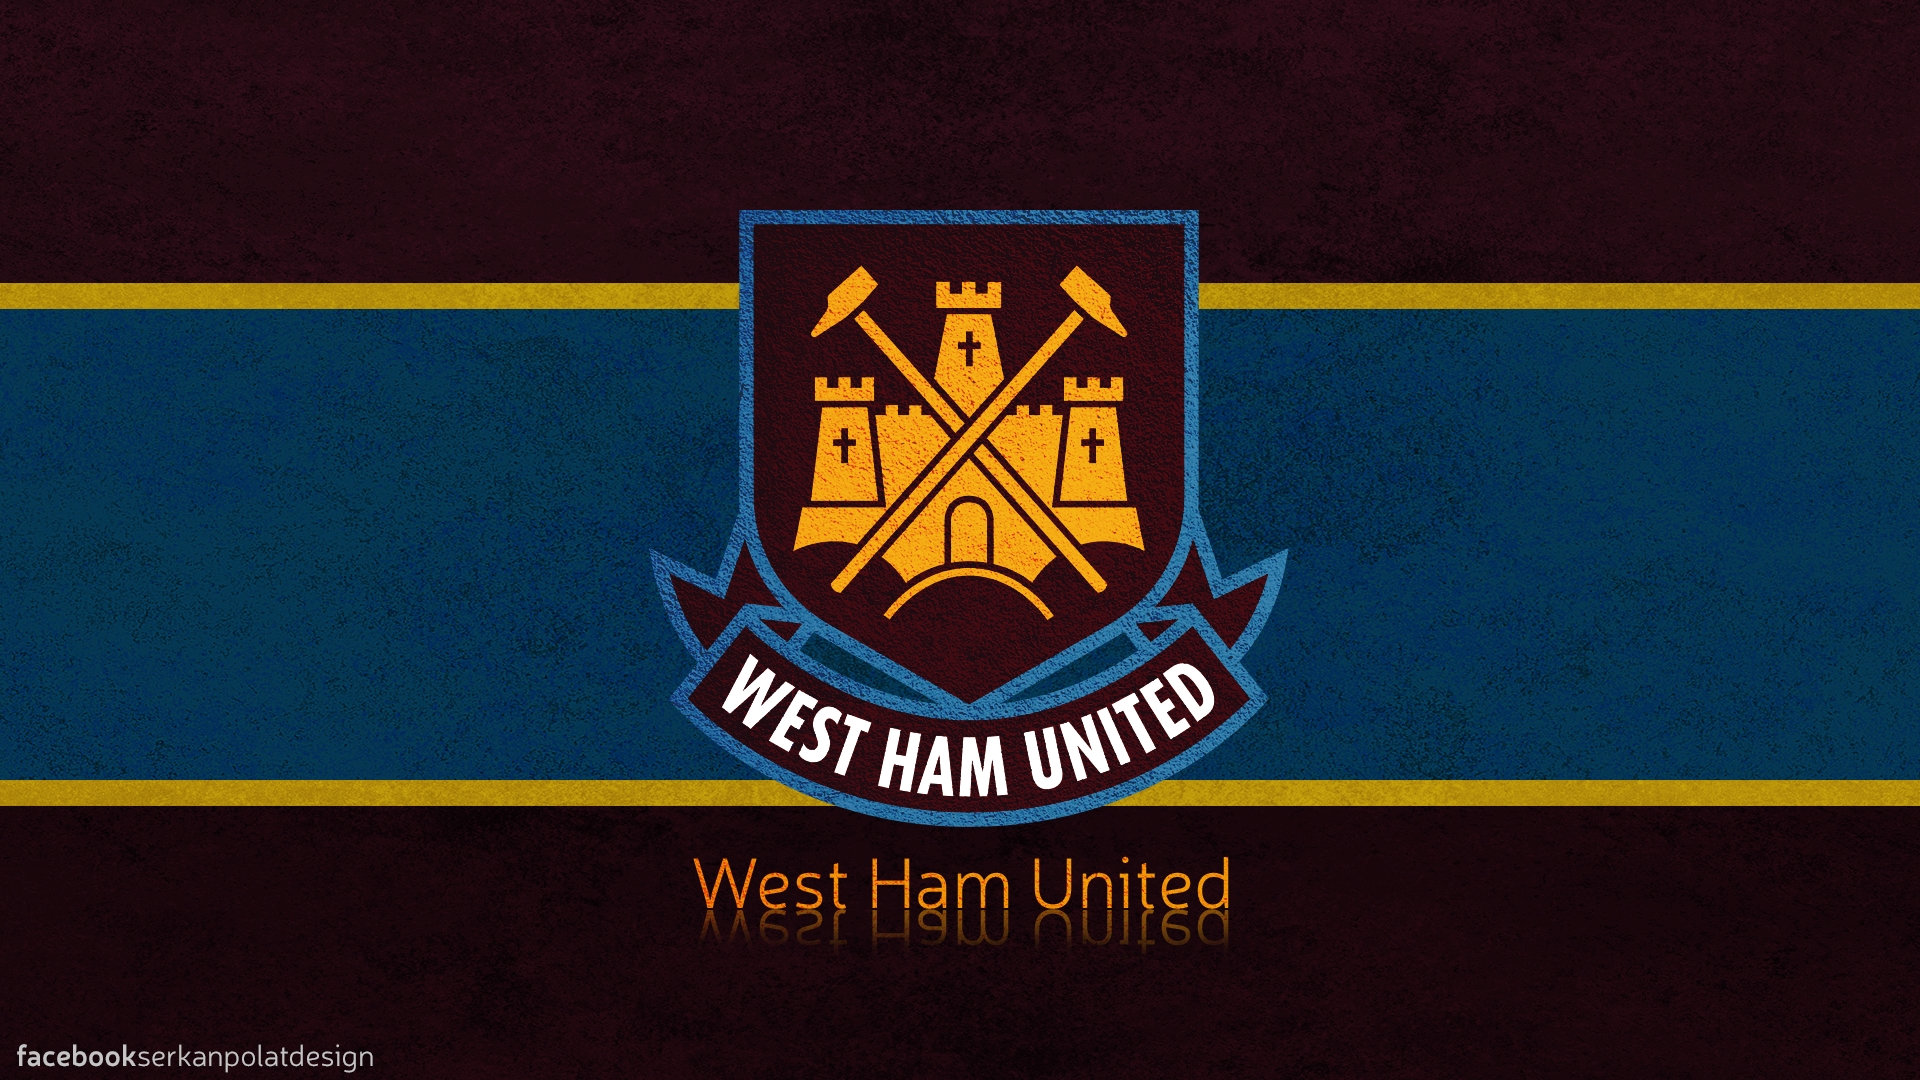 west ham united wallpaperserkanpolatdesign on deviantart